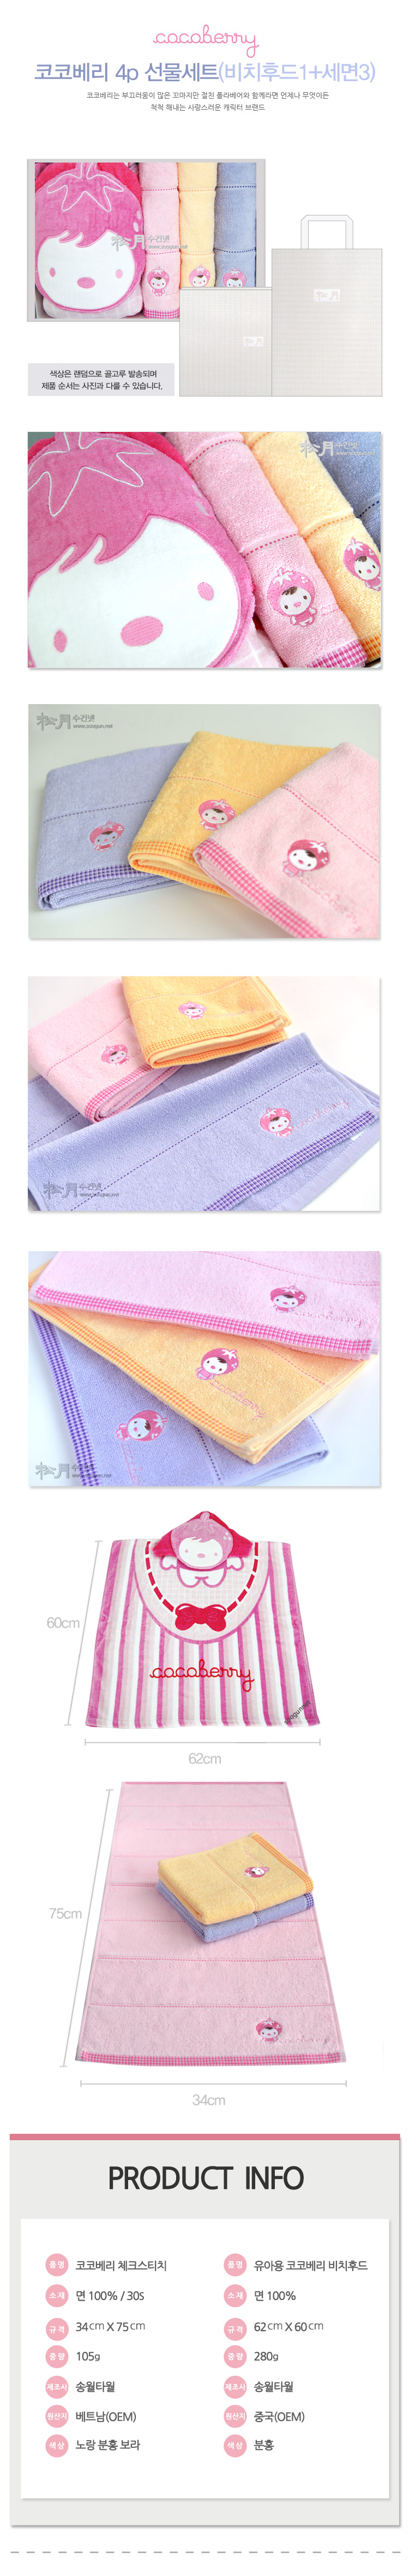 [ songwol ] Cocoberry 4P Gift Set (1 Cocoberry Hooded Towel + 3 Check Stitch Face Towel)